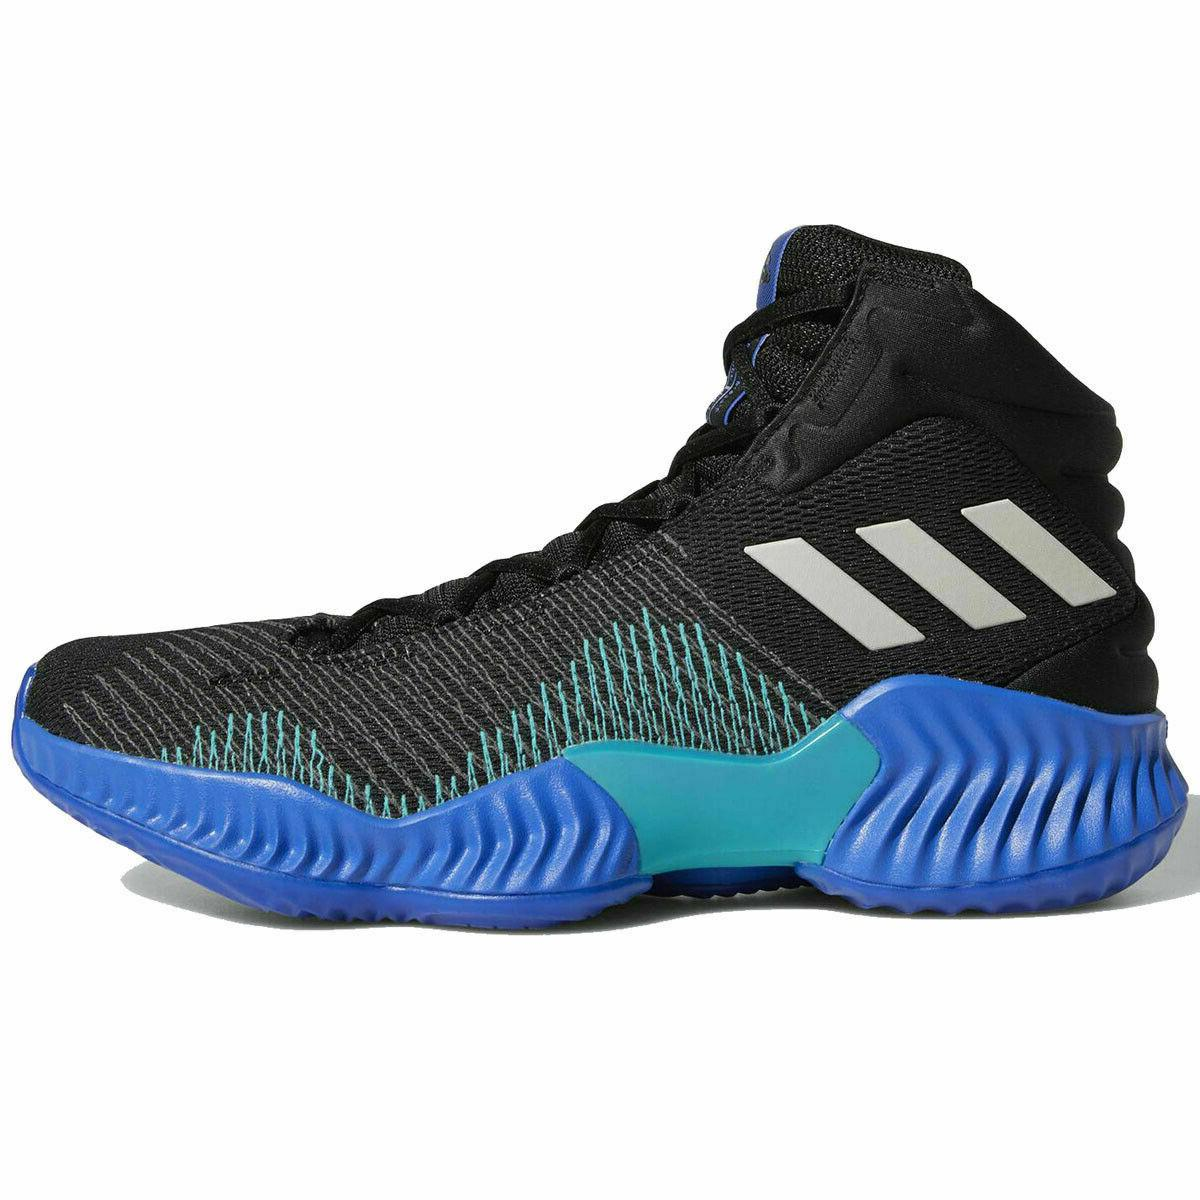 Adidas Pro 2018 Men's Shoes Black Blue AH2657